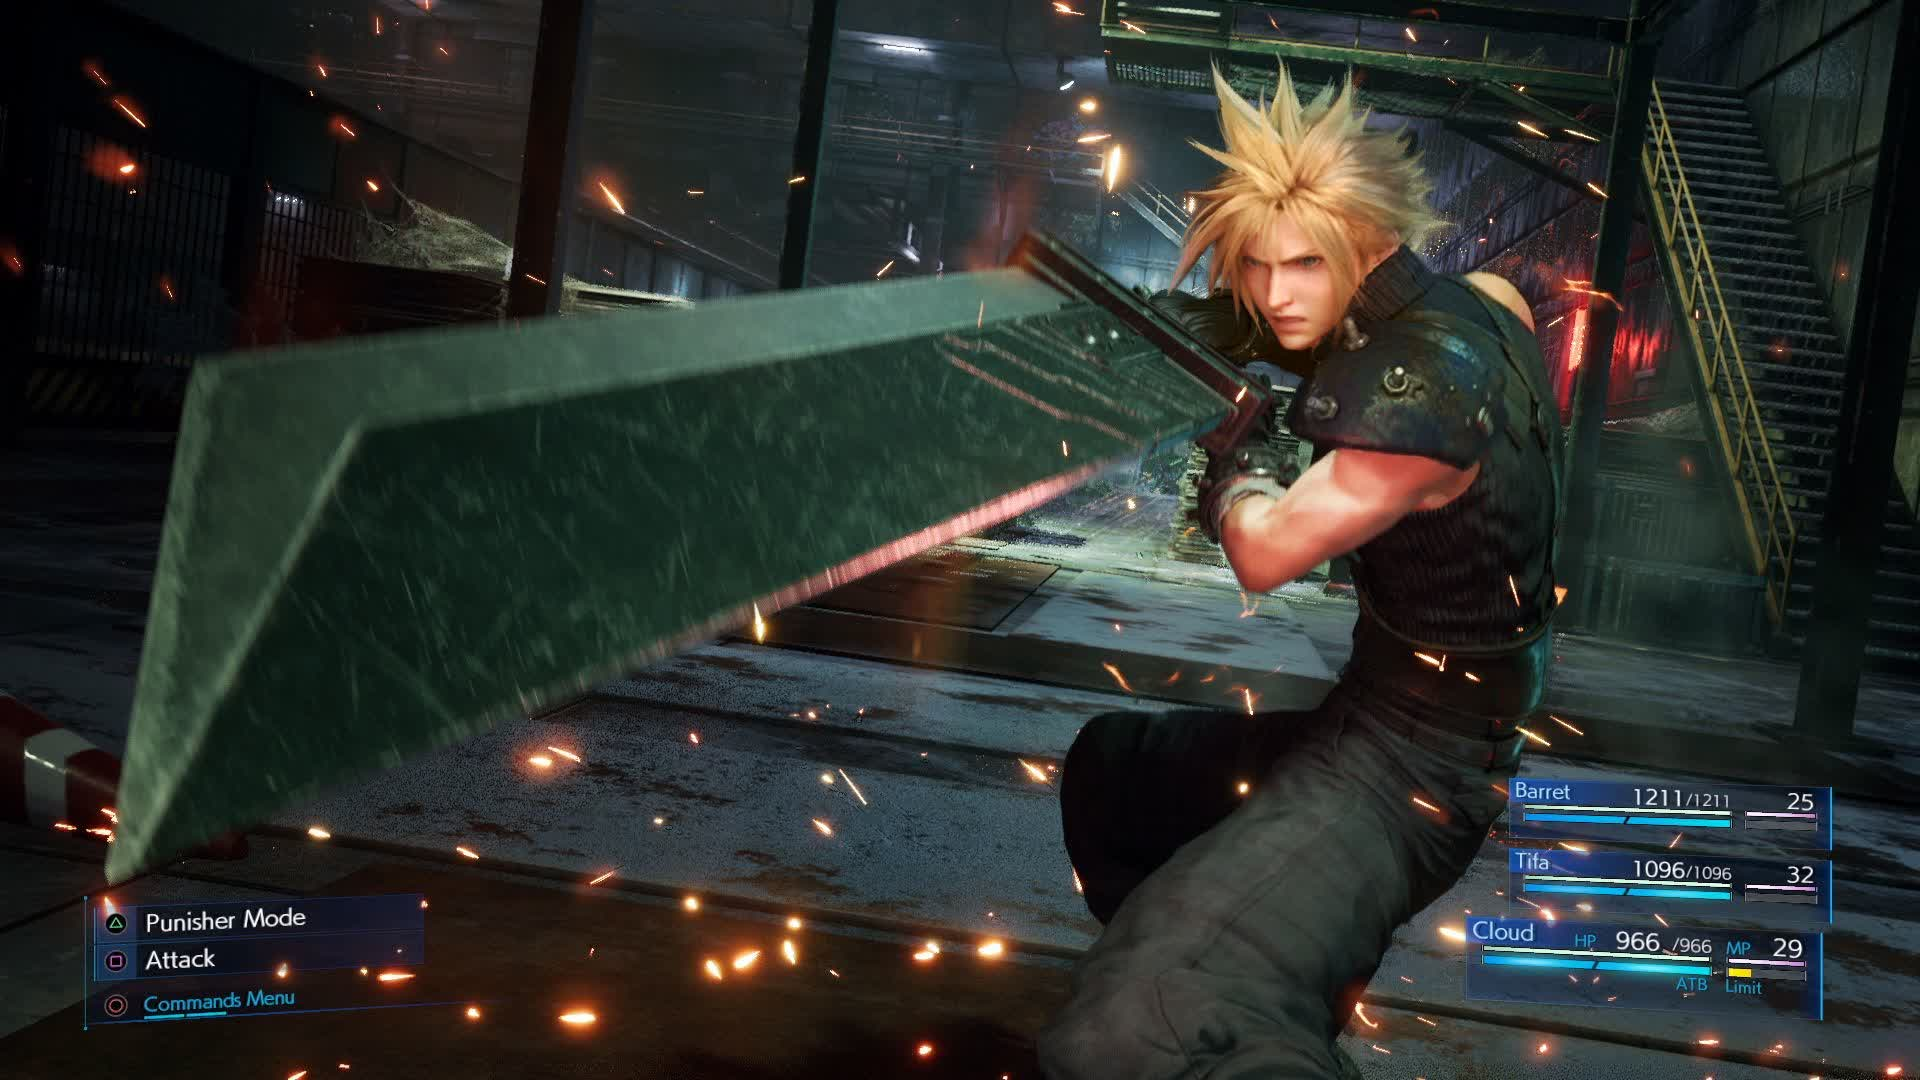 Final Fantasy VII Remake now has a game save converter, but it looks like a headache